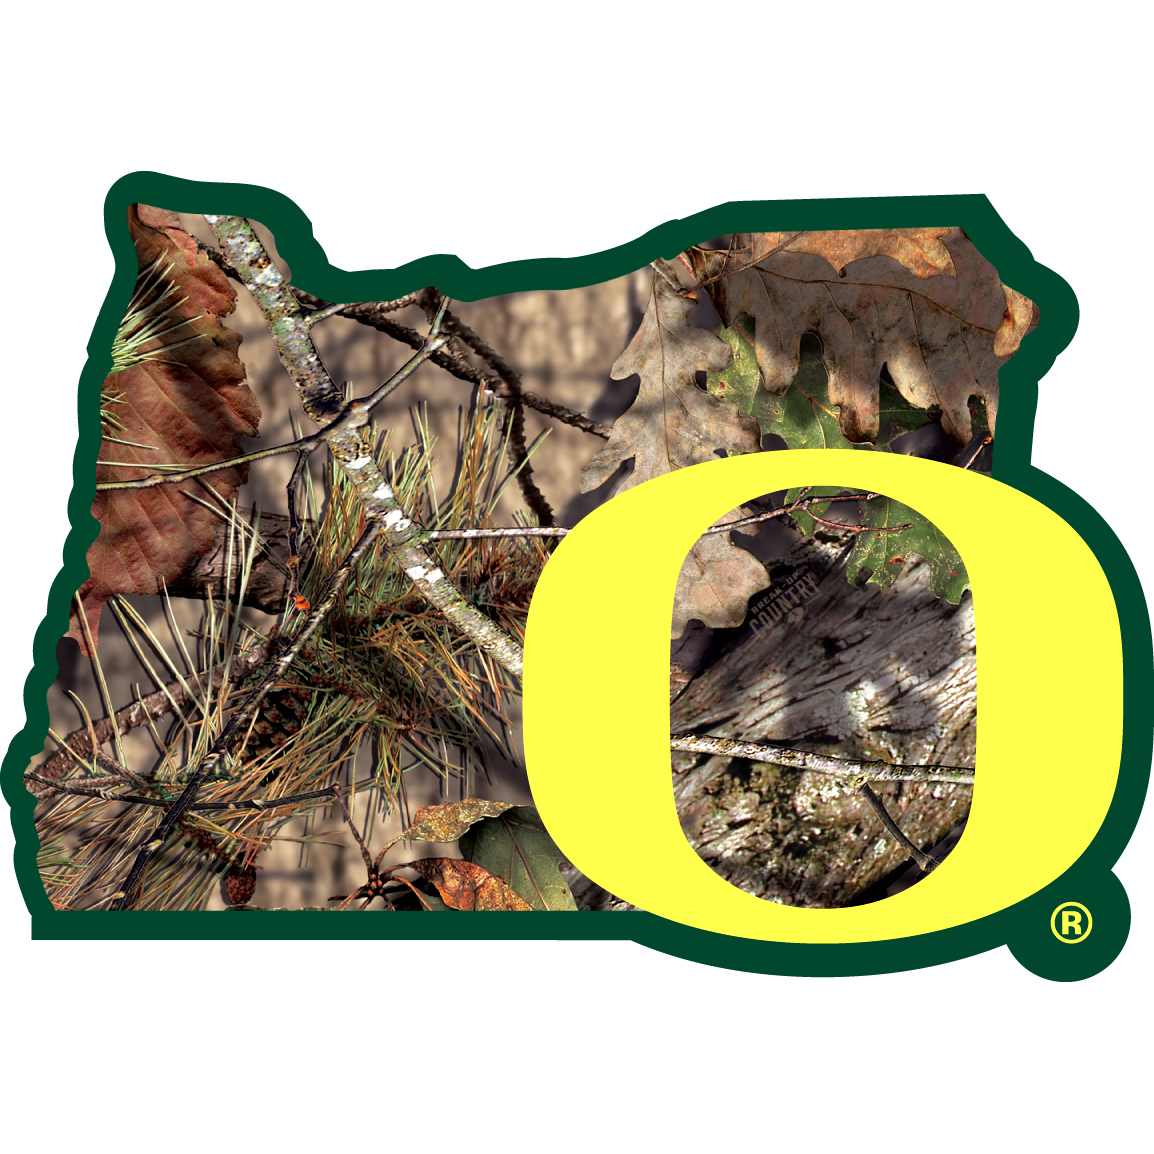 Oregon Ducks State Decal w/Mossy Oak Camo - It's a home state decal with a sporty twist! This Oregon Ducks decal features the team logo over a silhouette of the state in team colors and Mossy Oak camo and a helmet marking the home of the team. The decal is approximately 5 inches on repositionable vinyl.